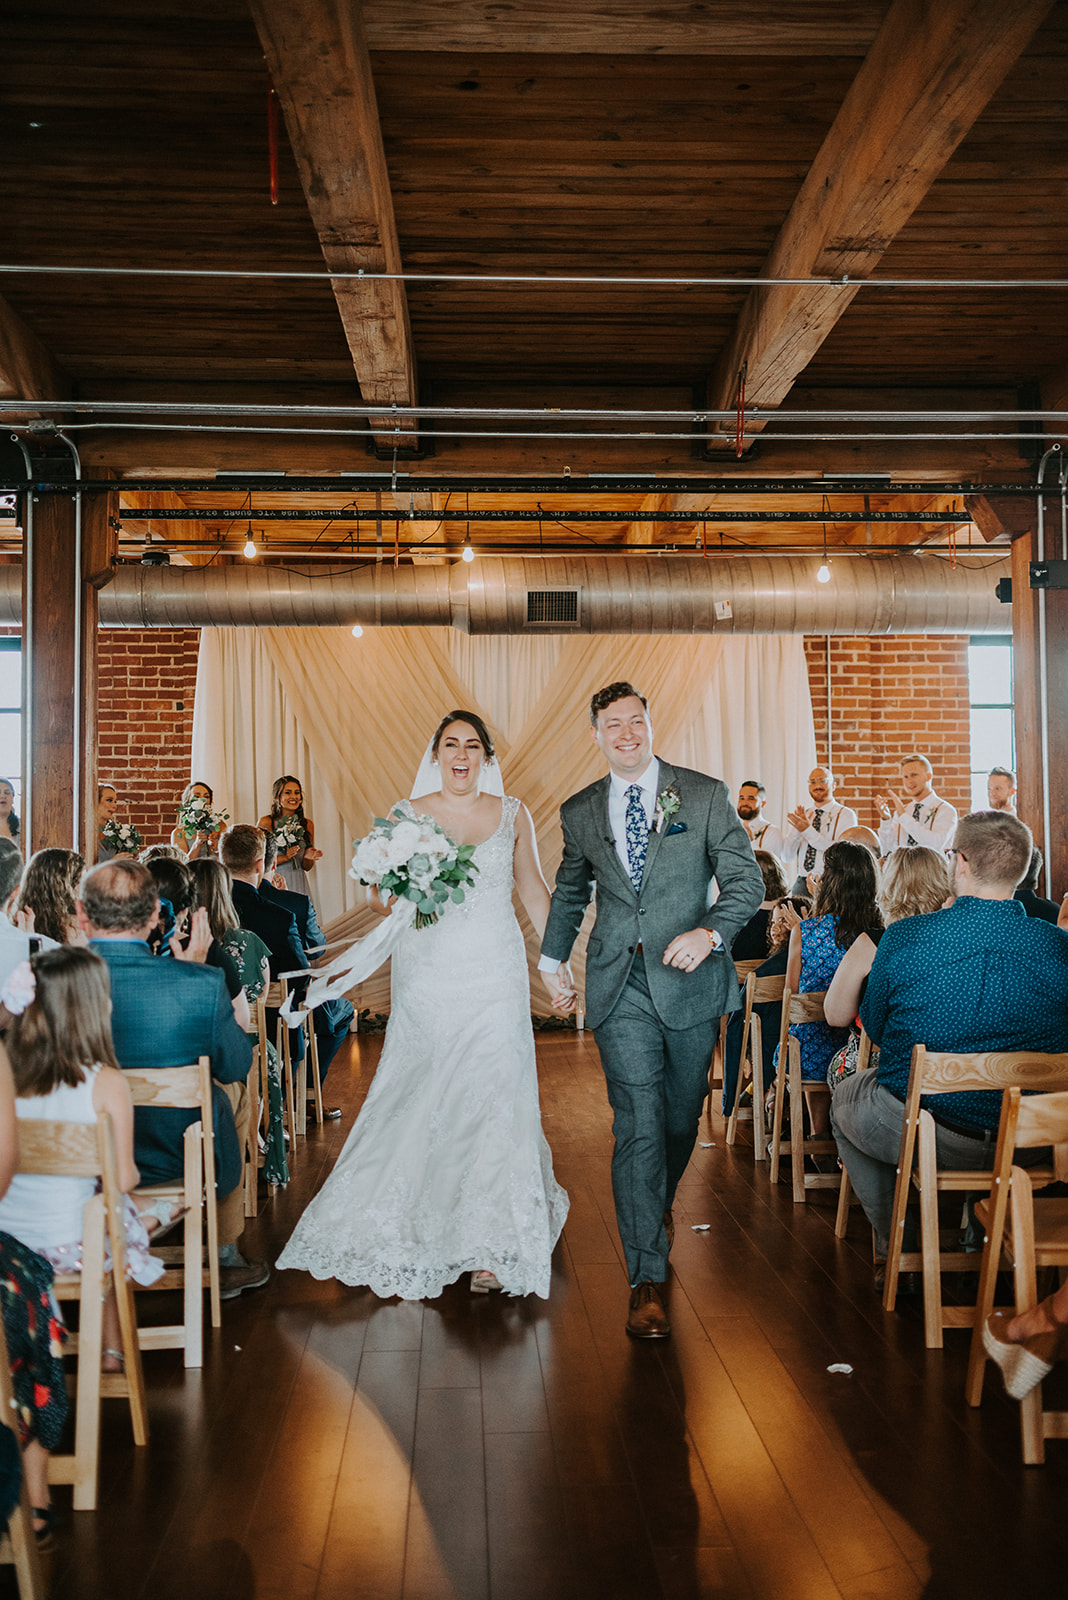 WonderlyCreative_Wedding_7.8.18_Lily_Marshall_-952.jpg